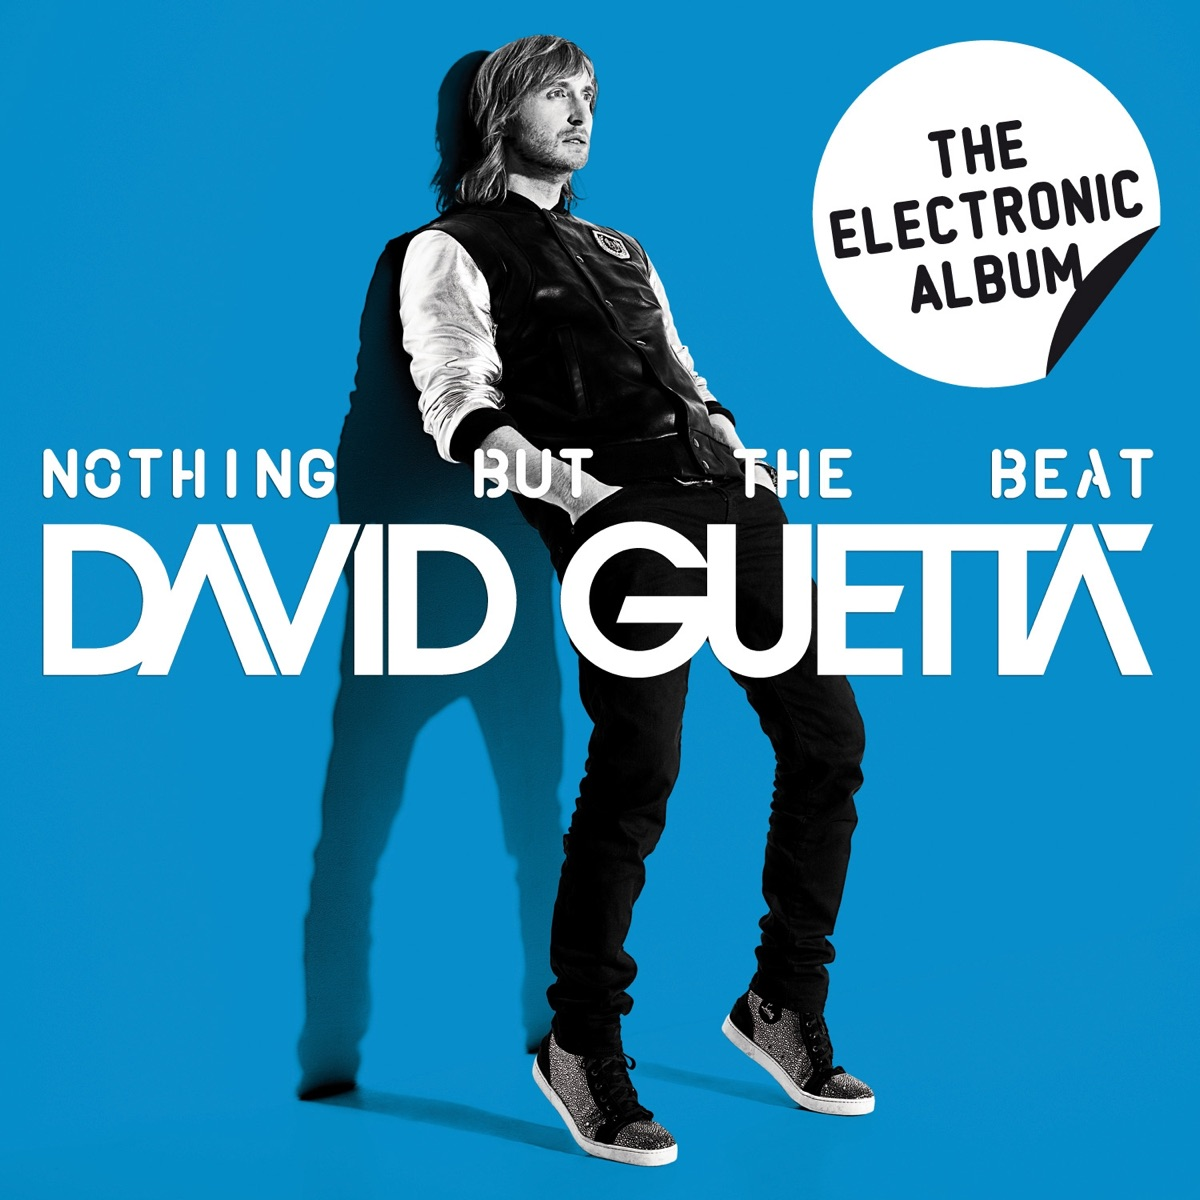 Nothing But the Beat - The Electronic Album David Guetta CD cover